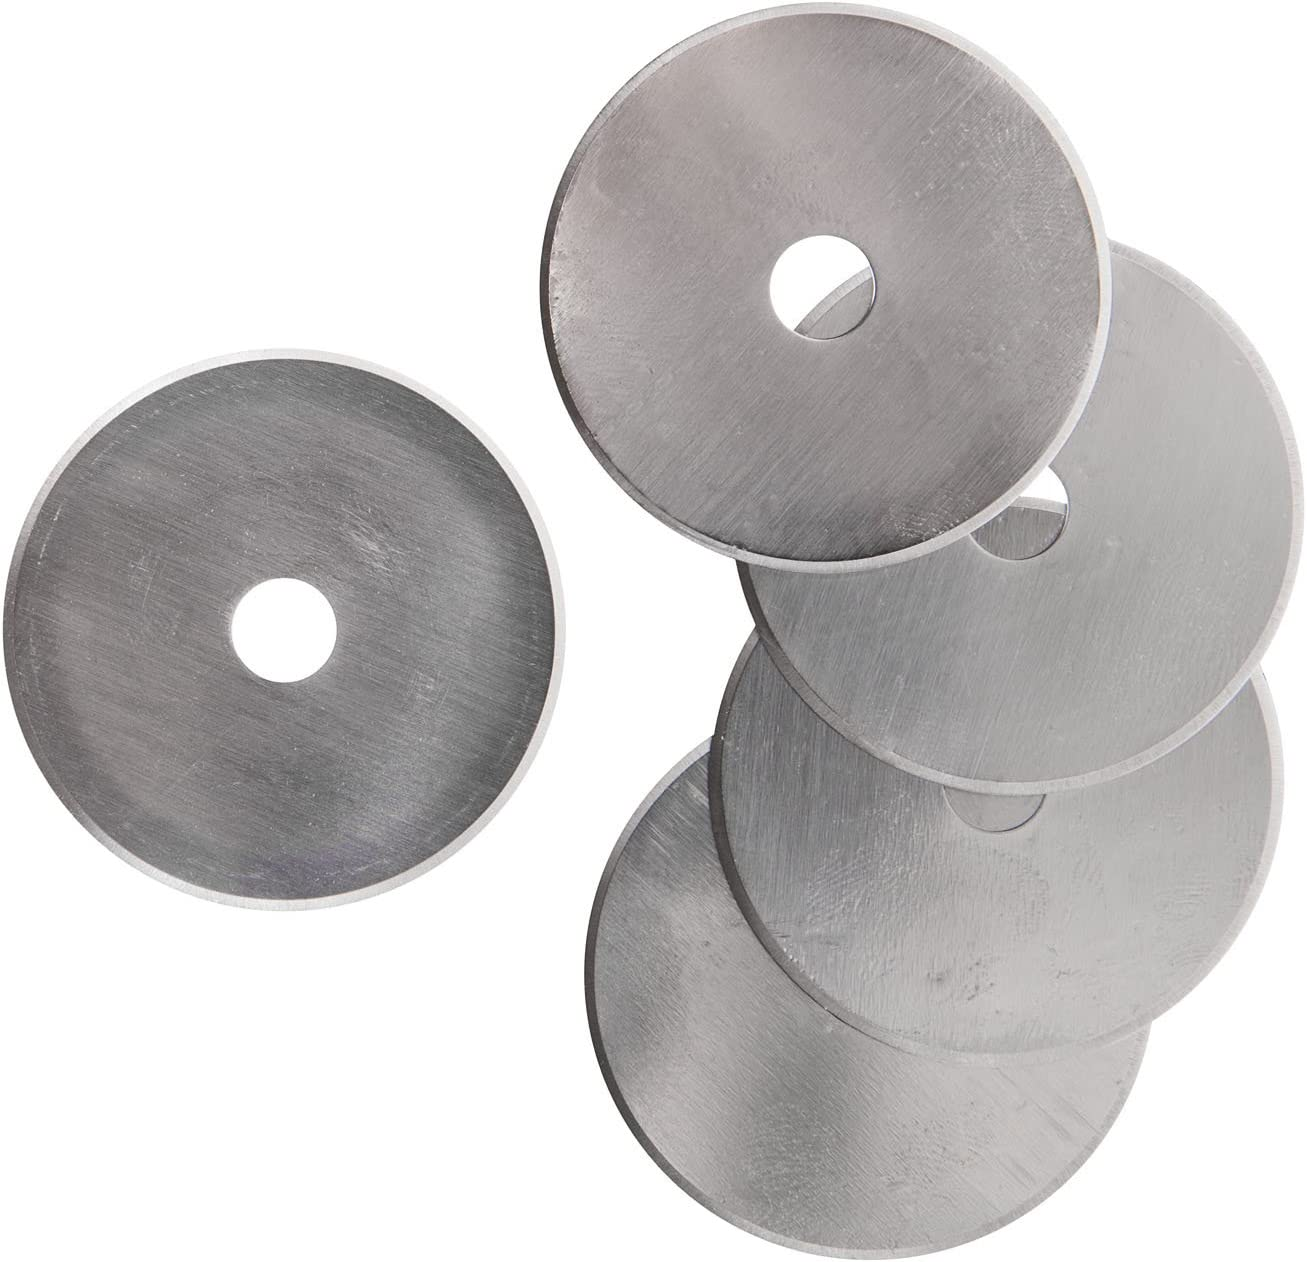 Sew Great 45mm Rotary Cutter Blades (5 Pack)